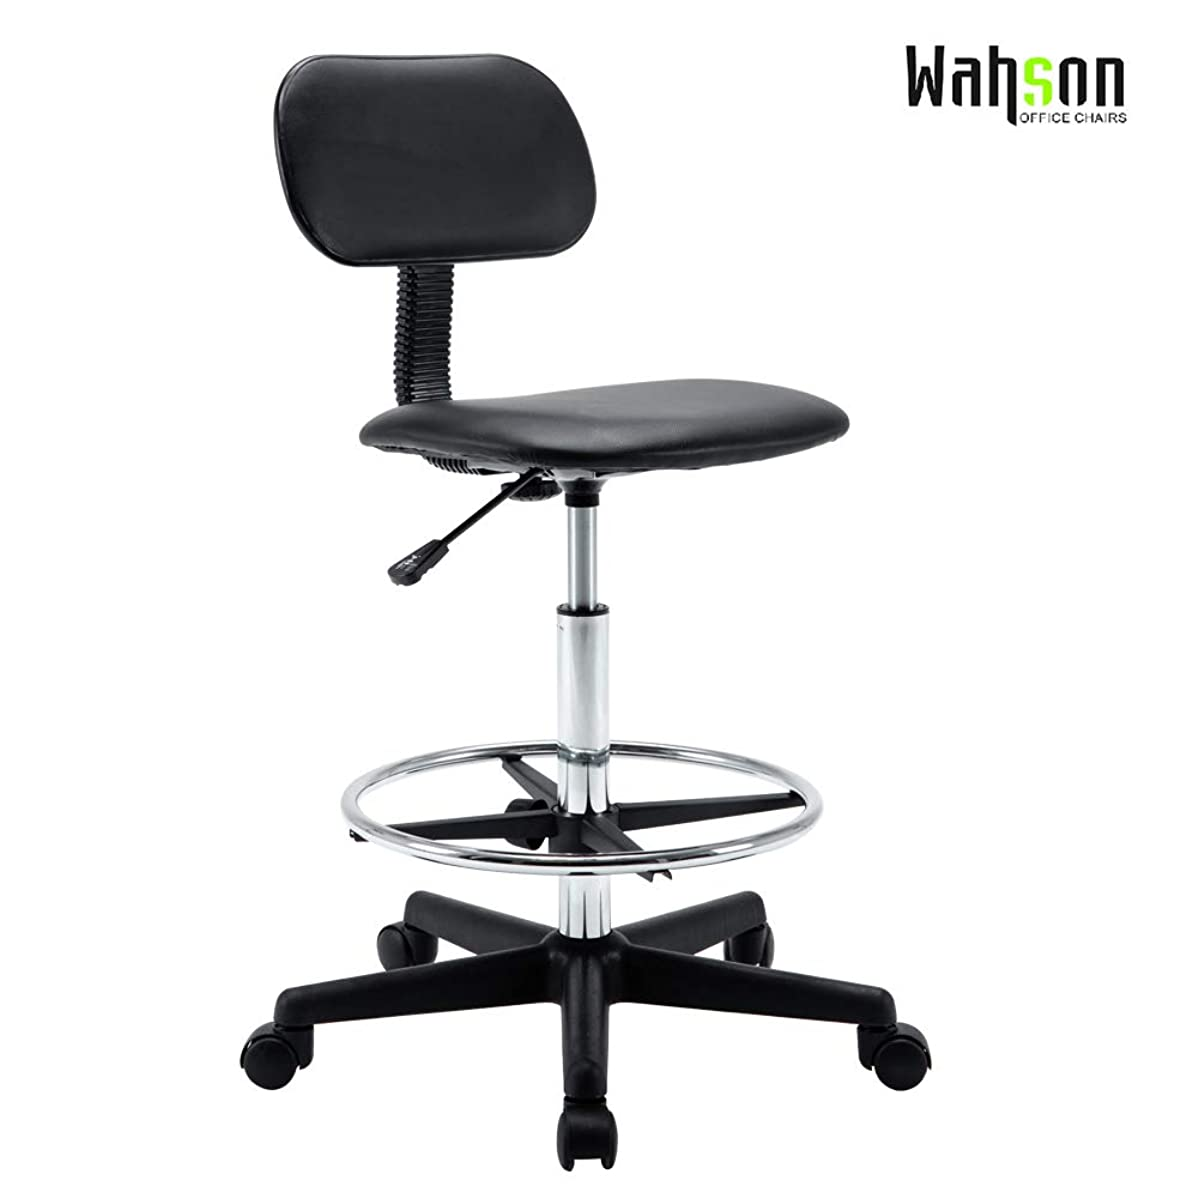 Adjustable Hydraulic Rolling Swivel Bar Stool Chair Salon Spa Stools Rest 360-degree Work Drafting Rolling Stool with Heavy Duty Metal Base for Clinic Dentist Spa Massage Office (20B)